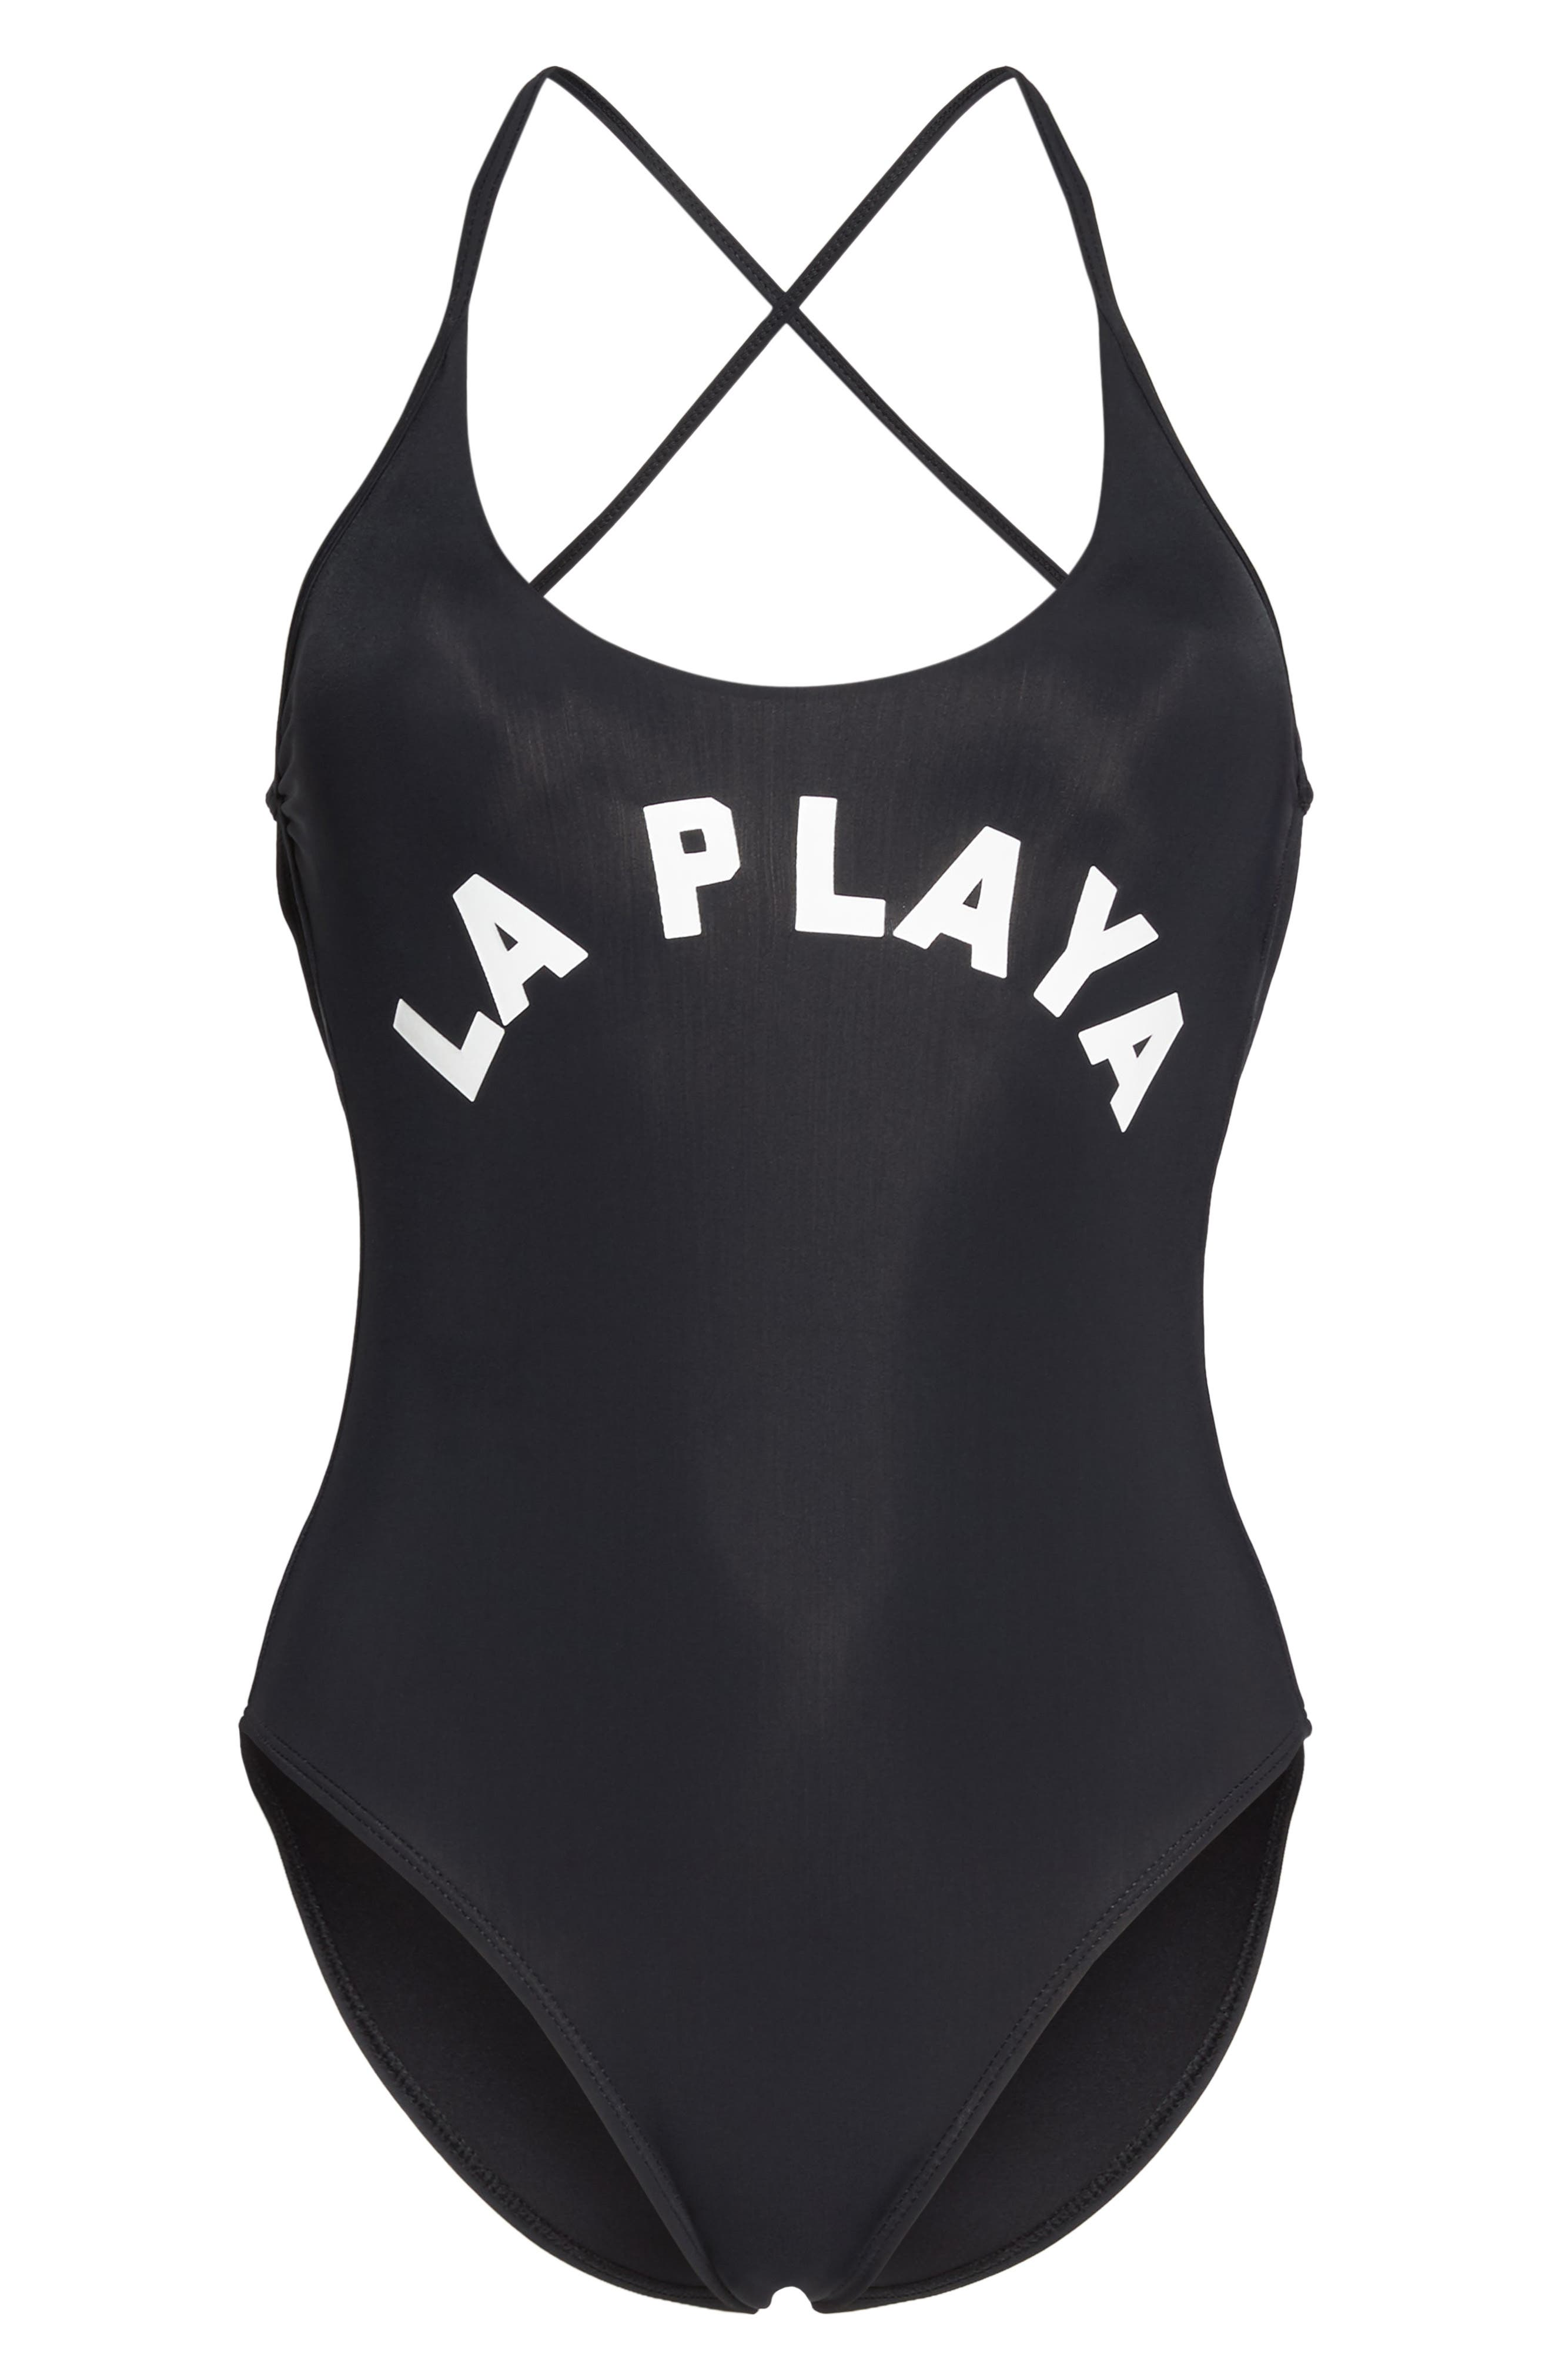 Farrah One-Piece Swimsuit,                             Alternate thumbnail 6, color,                             Black Multi